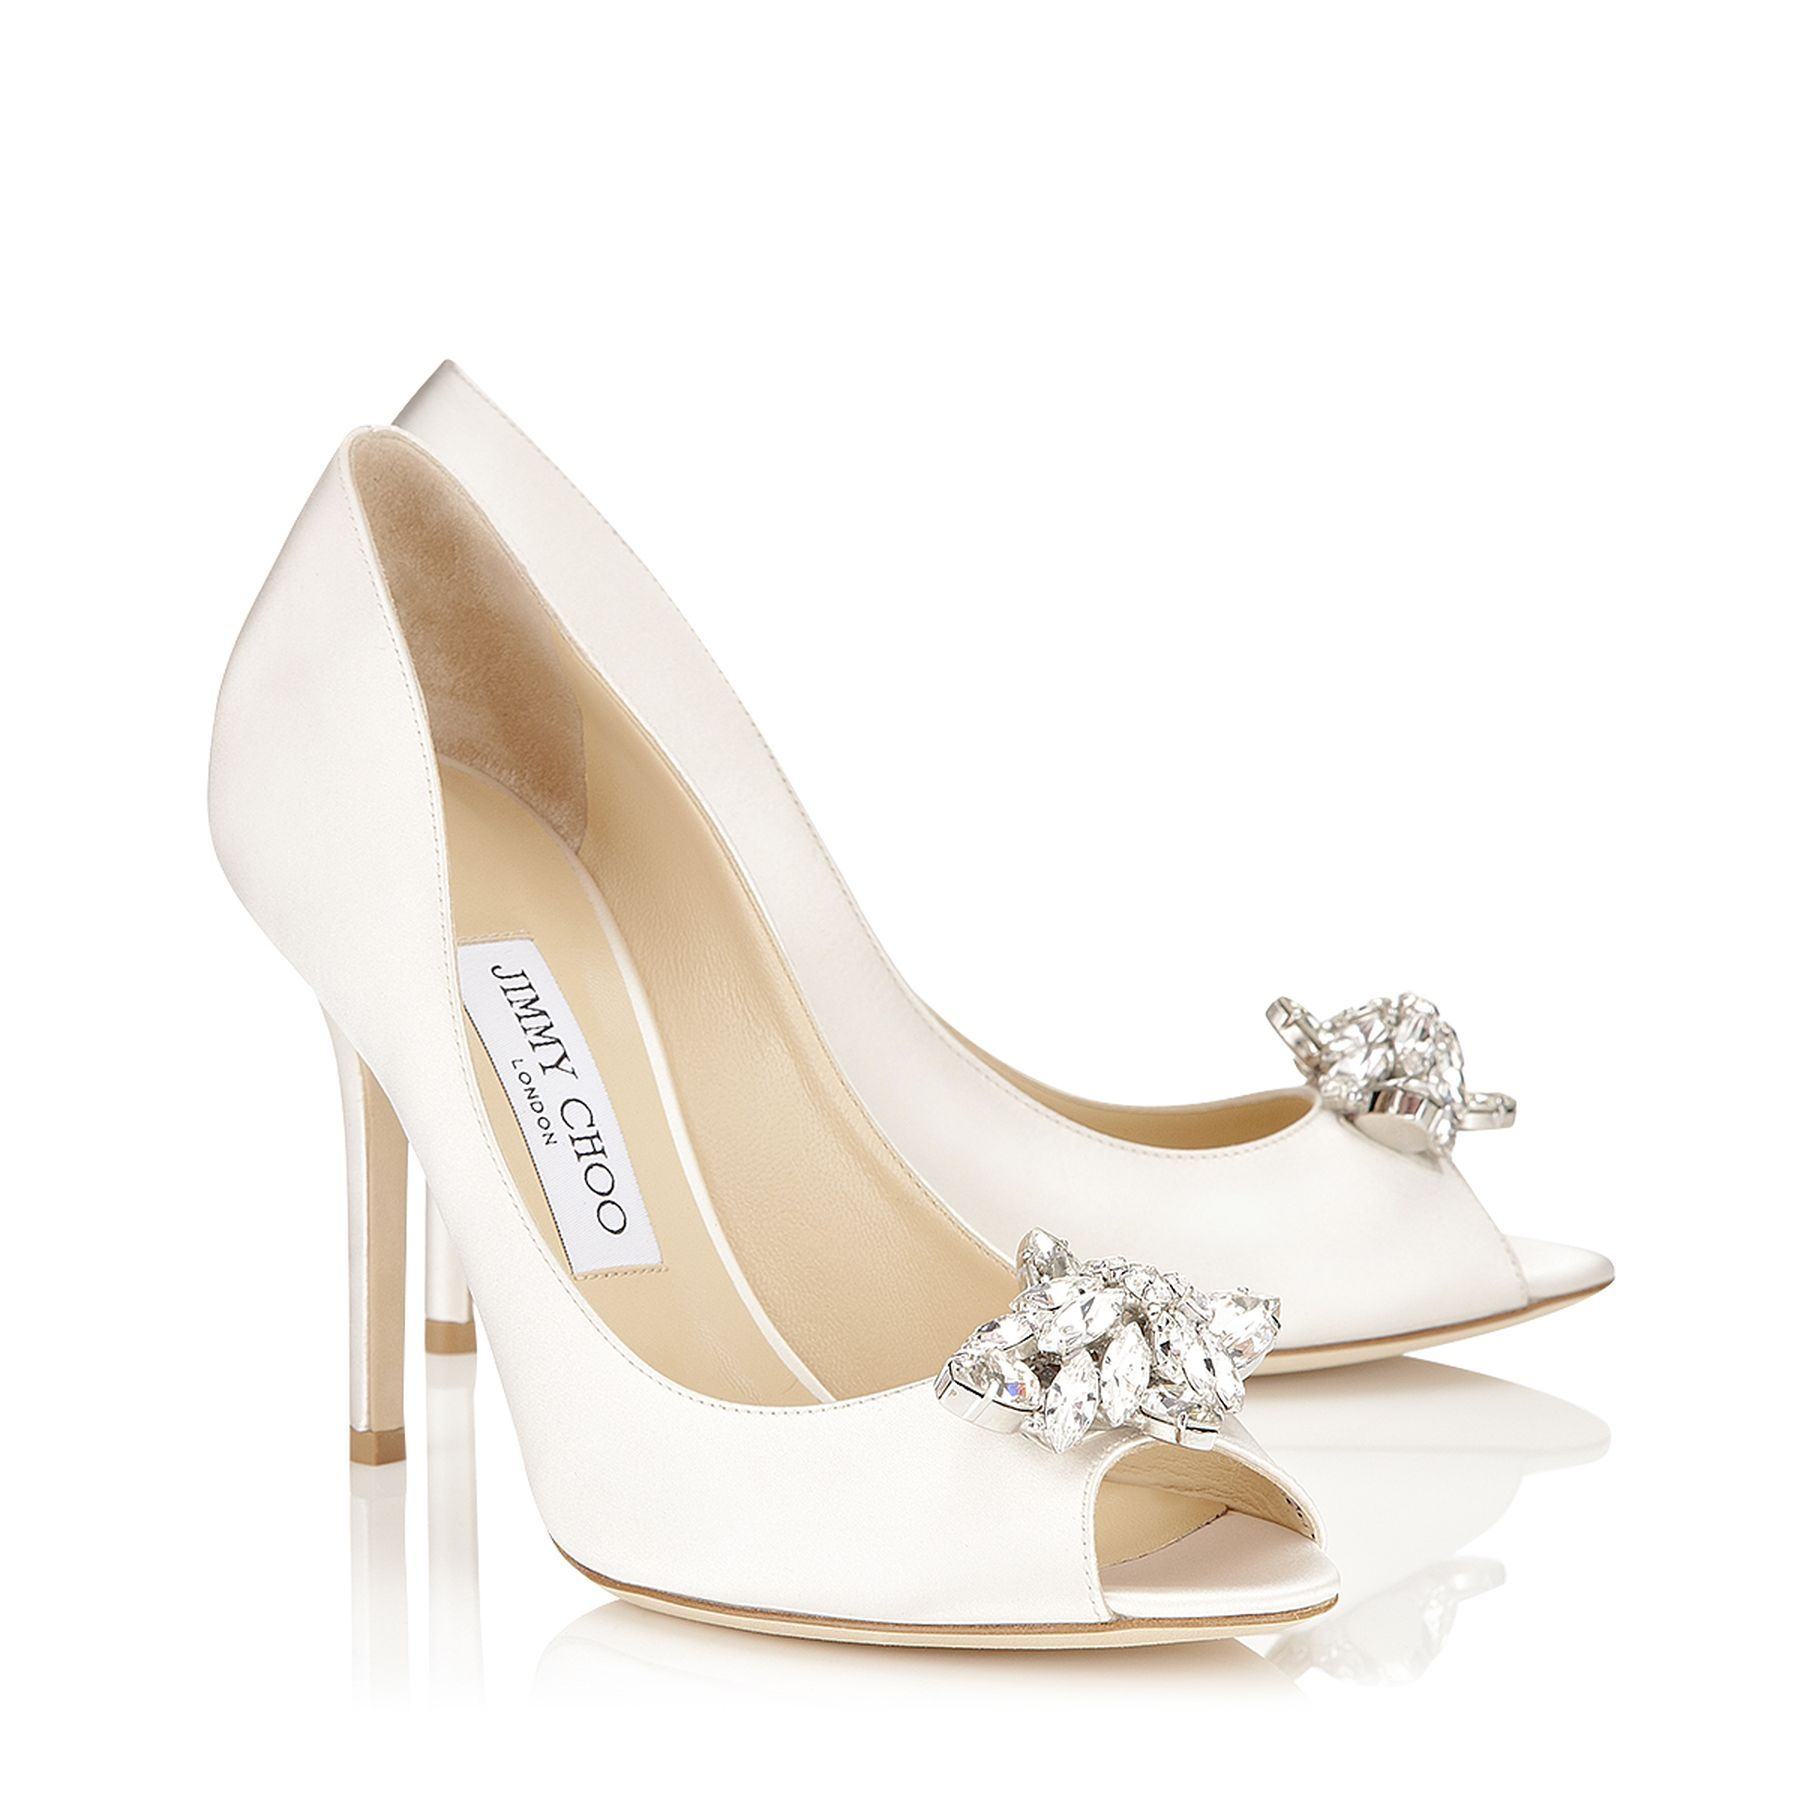 Ivory Silk Satin Peep Toe Pumps With Crystal Detail Mia Bridal Collection Jimmy Choo Women Sale Bride Shoes Bridal Shoes Glam Sandals